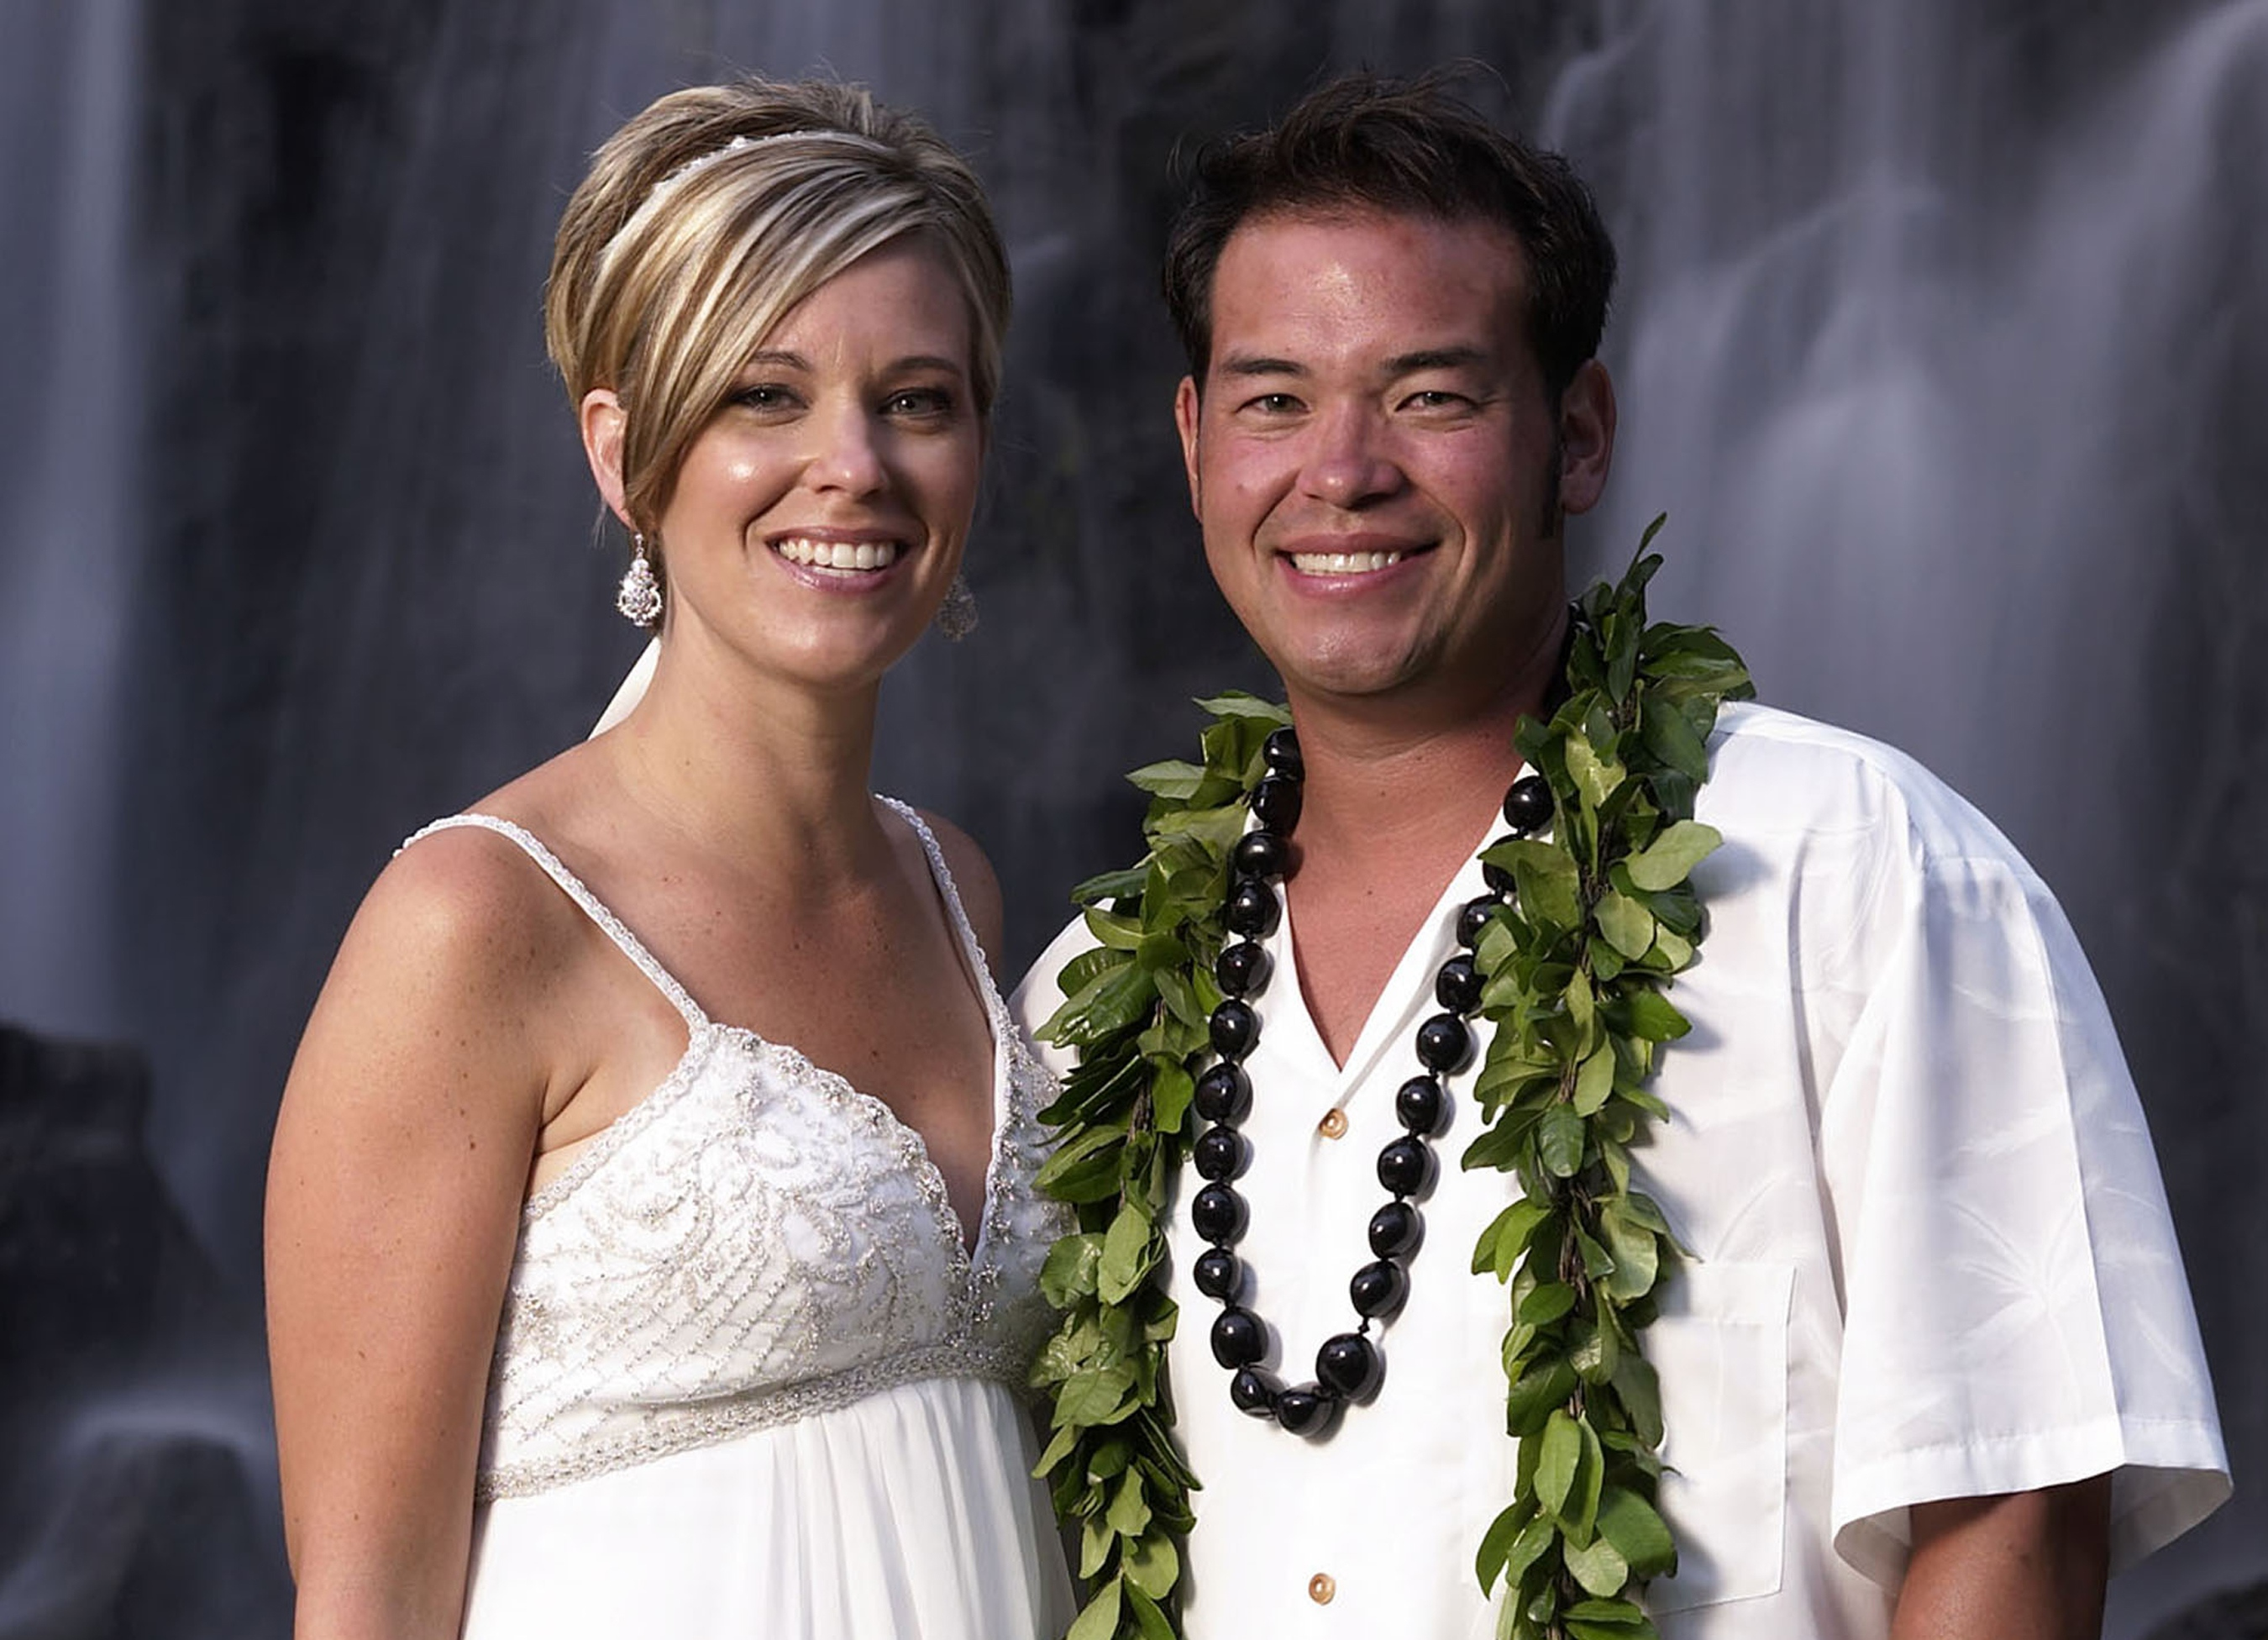 This image released by TLC, shows Jon Gosselin, right, and his wife Kate Gosselin, from the TLC series 鬯on & Kate Plus 8,' in Hawaii.